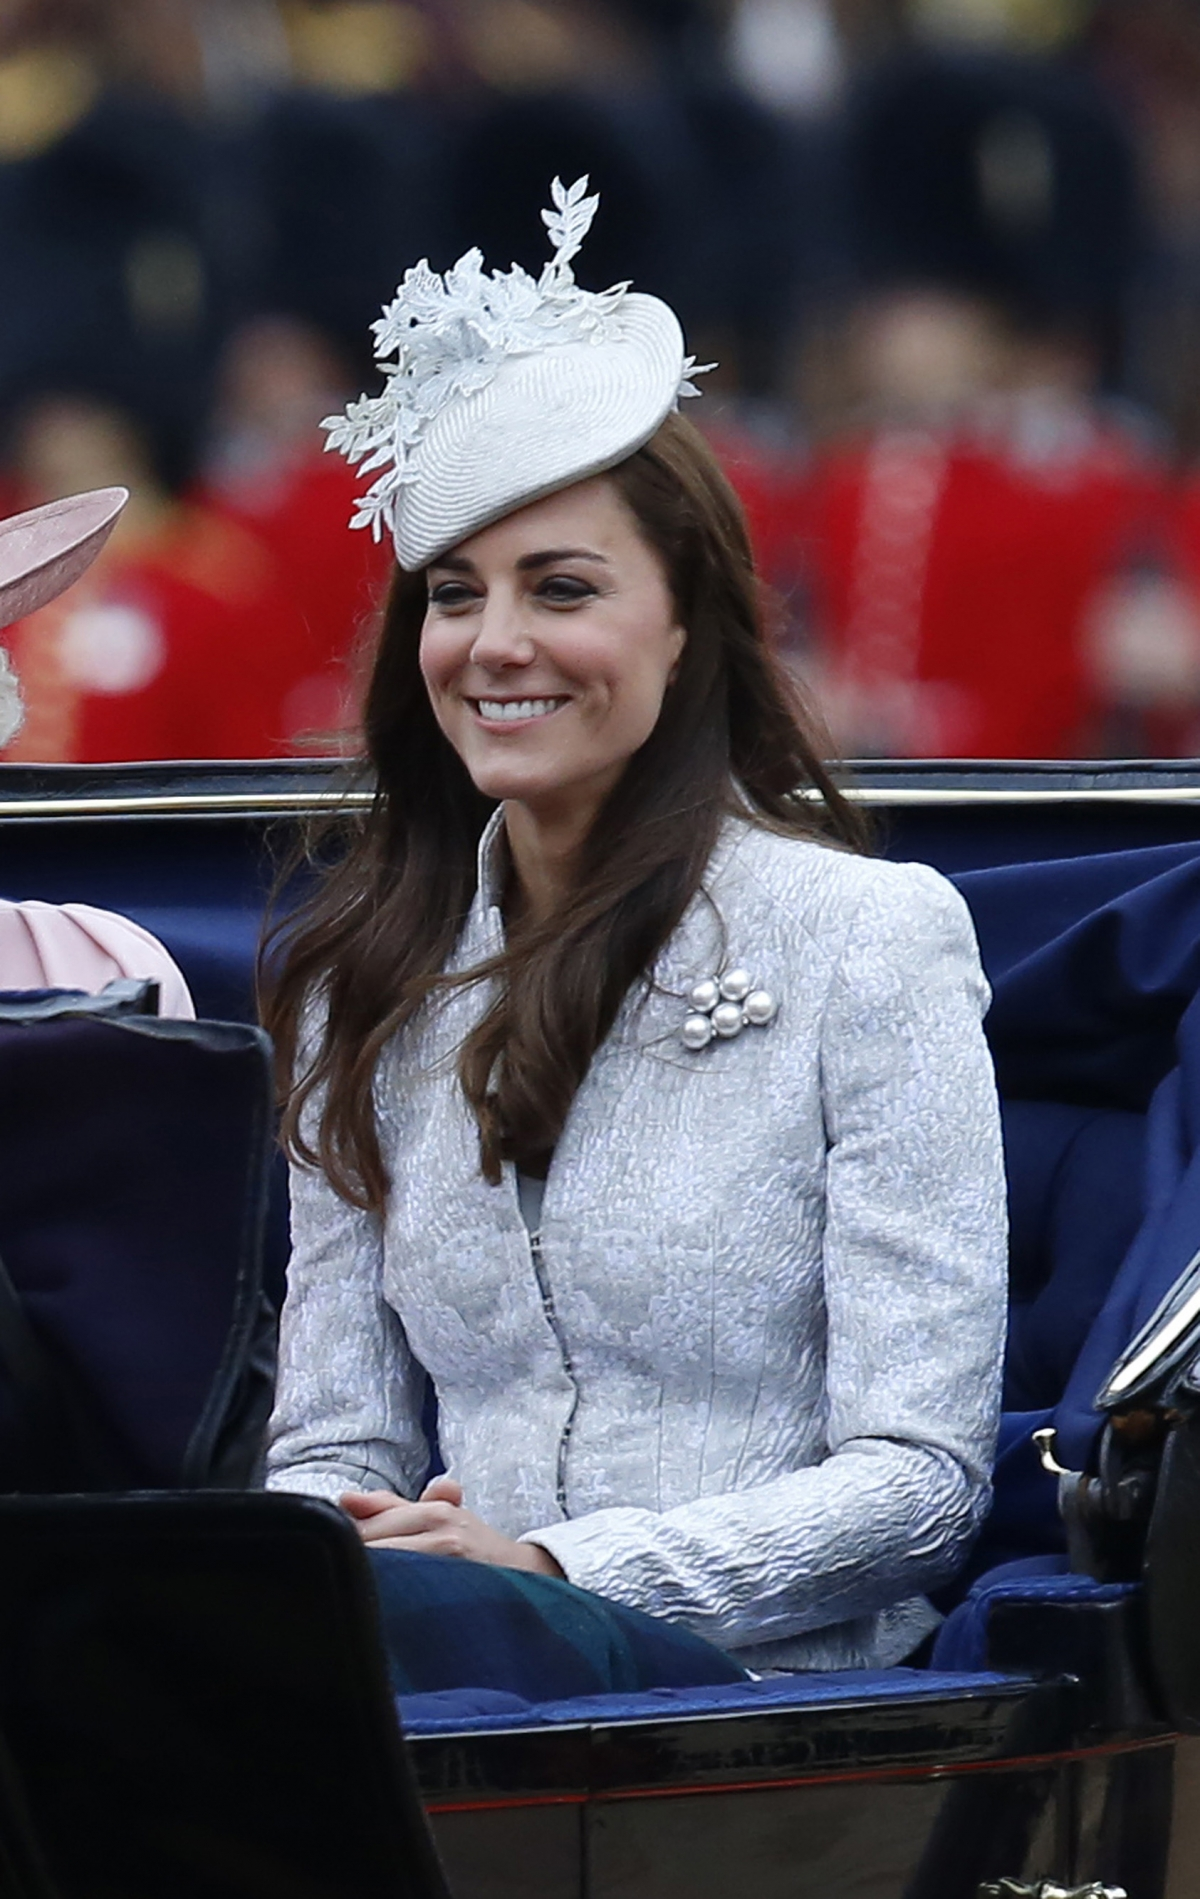 Catherine, Duchess of Cambridge arrives for the annual Trooping the Colour ceremony at Horse Guards Parade in central London